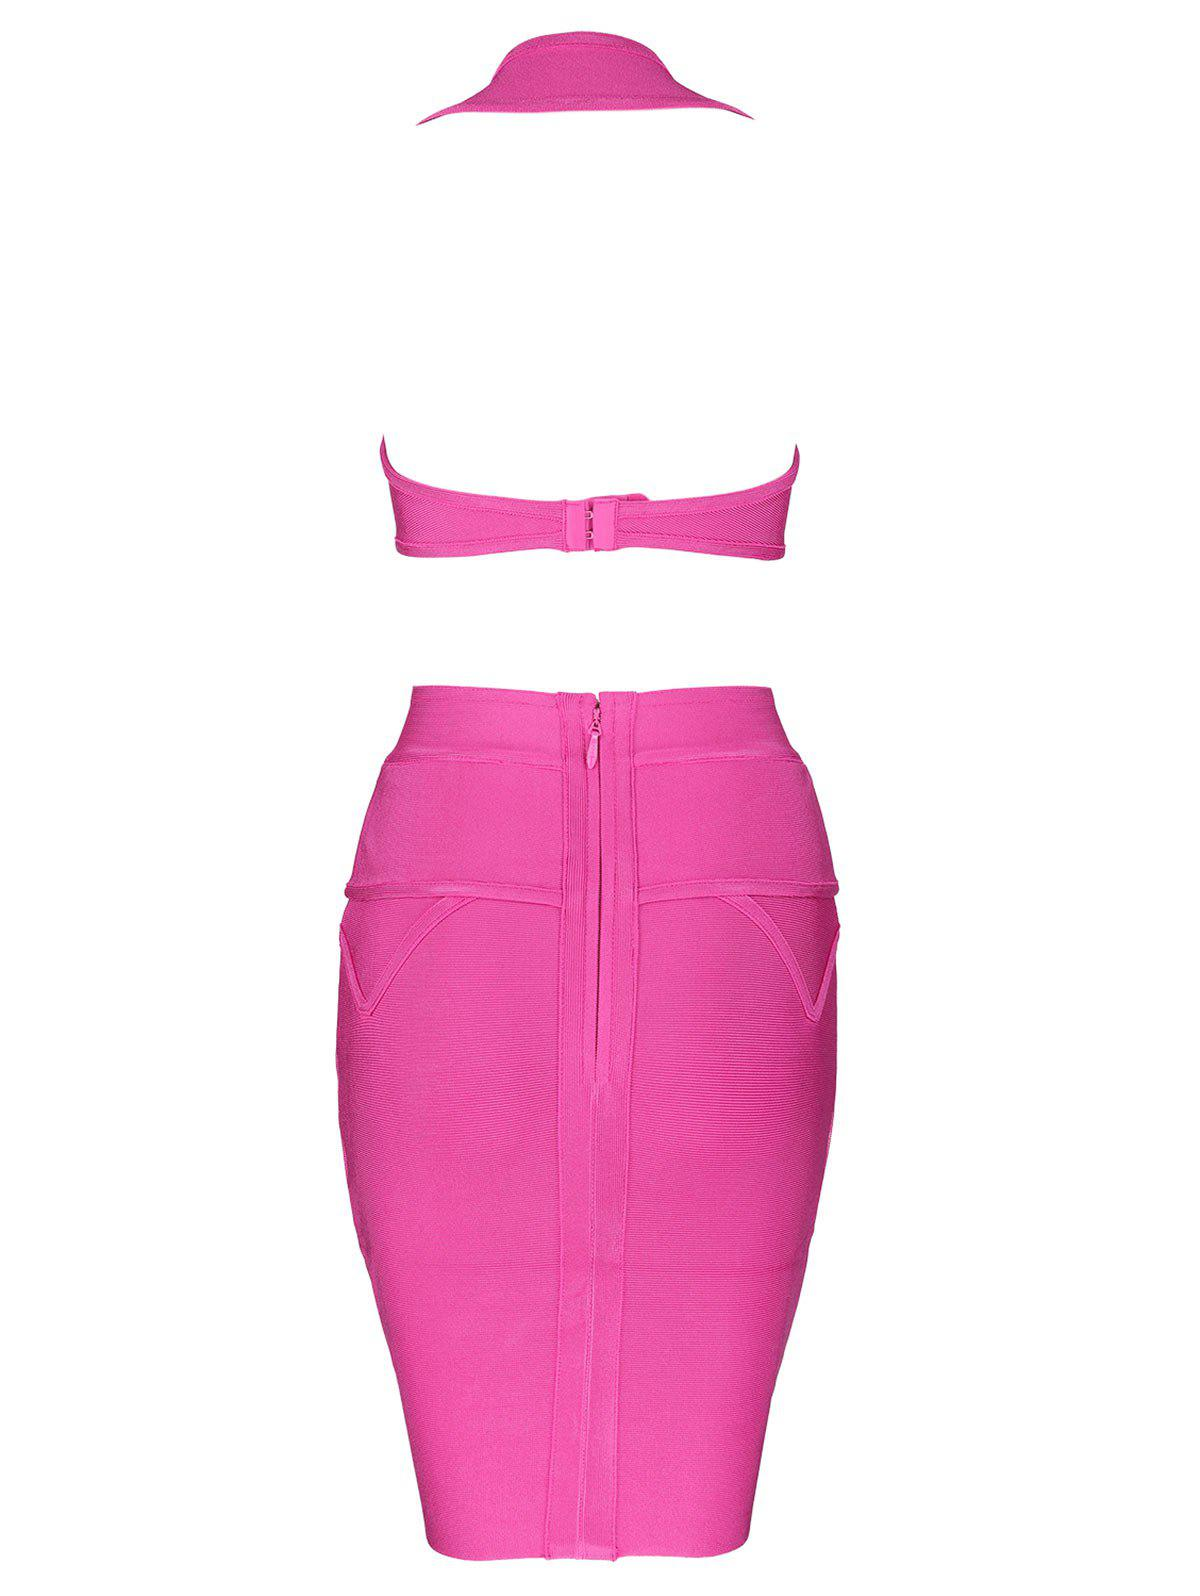 Sweetheart Neck Cut Out Bandage Dress - ROSE RED L